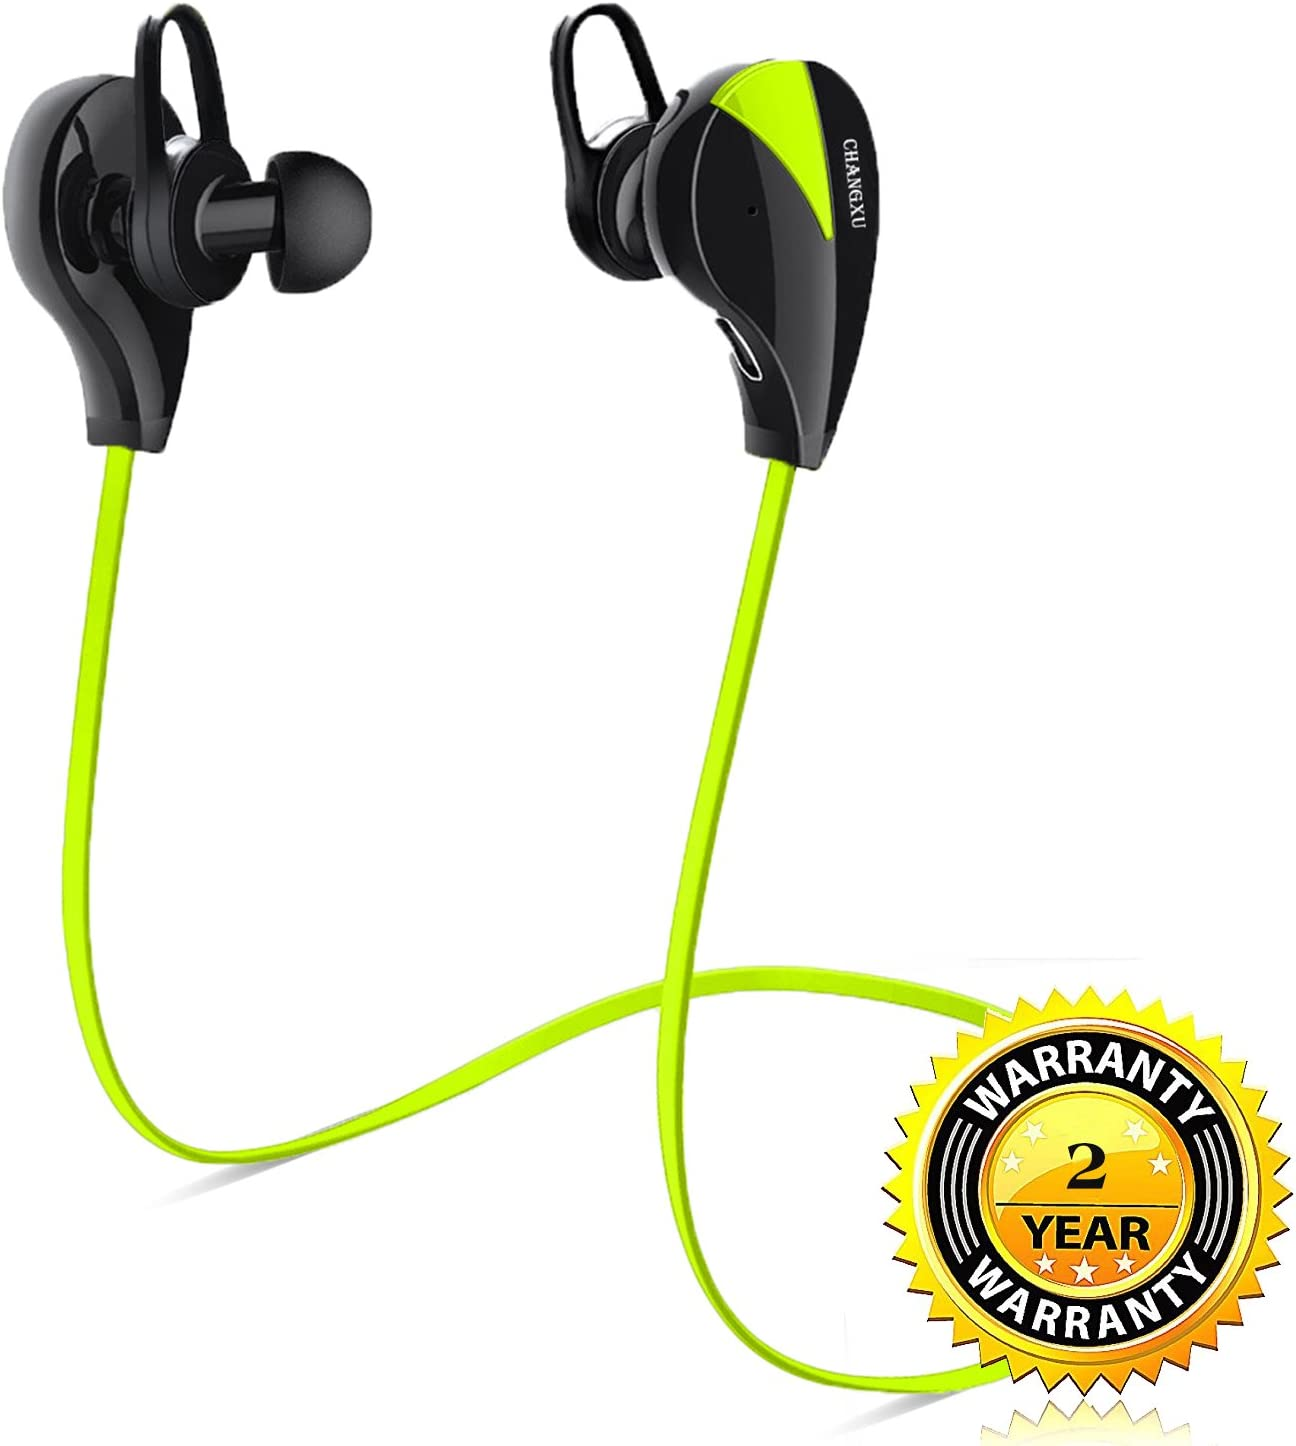 Changxu Bluetooth Headphones Bluetooth Earphones Best Bluetooth Headset Earphones With Mic Hd Stereo Sweatproof Anti Drop Lightweight Noise Cancelling For Sport Gym Running Workout For 8hours Amazon Ca Electronics